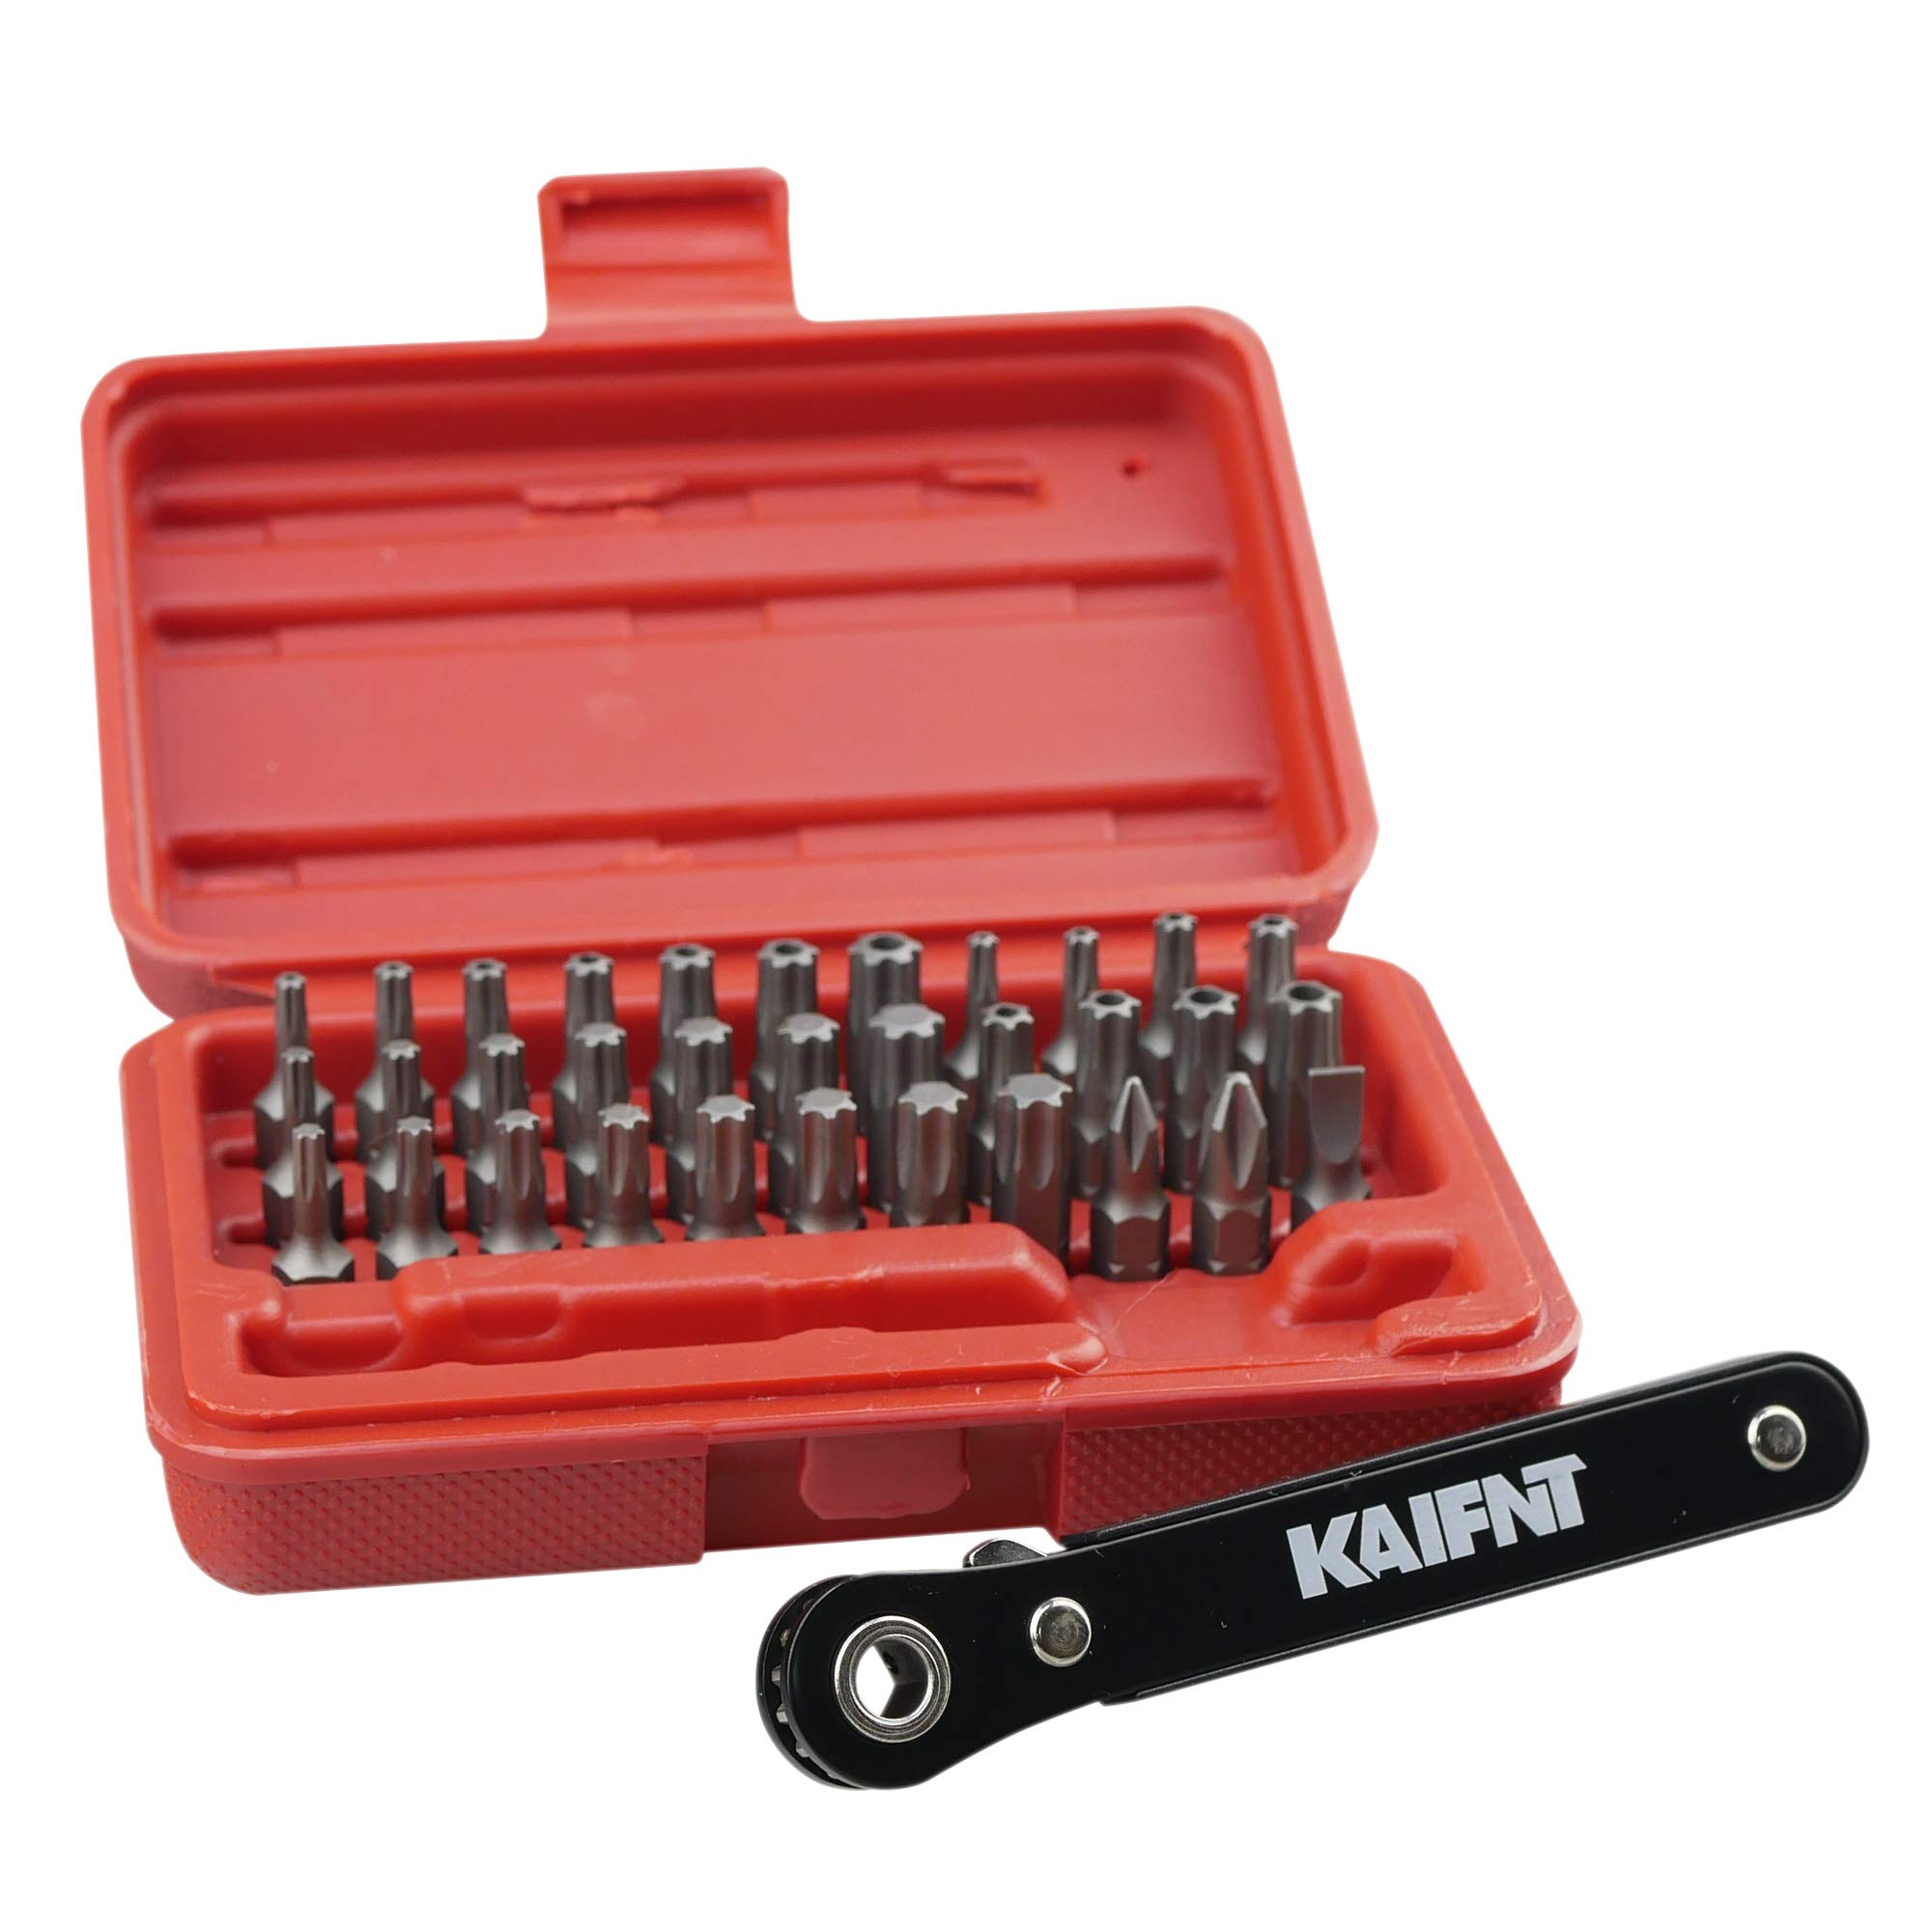 KAIFNT Comprehensive Ratchet Wrench 34 Piece